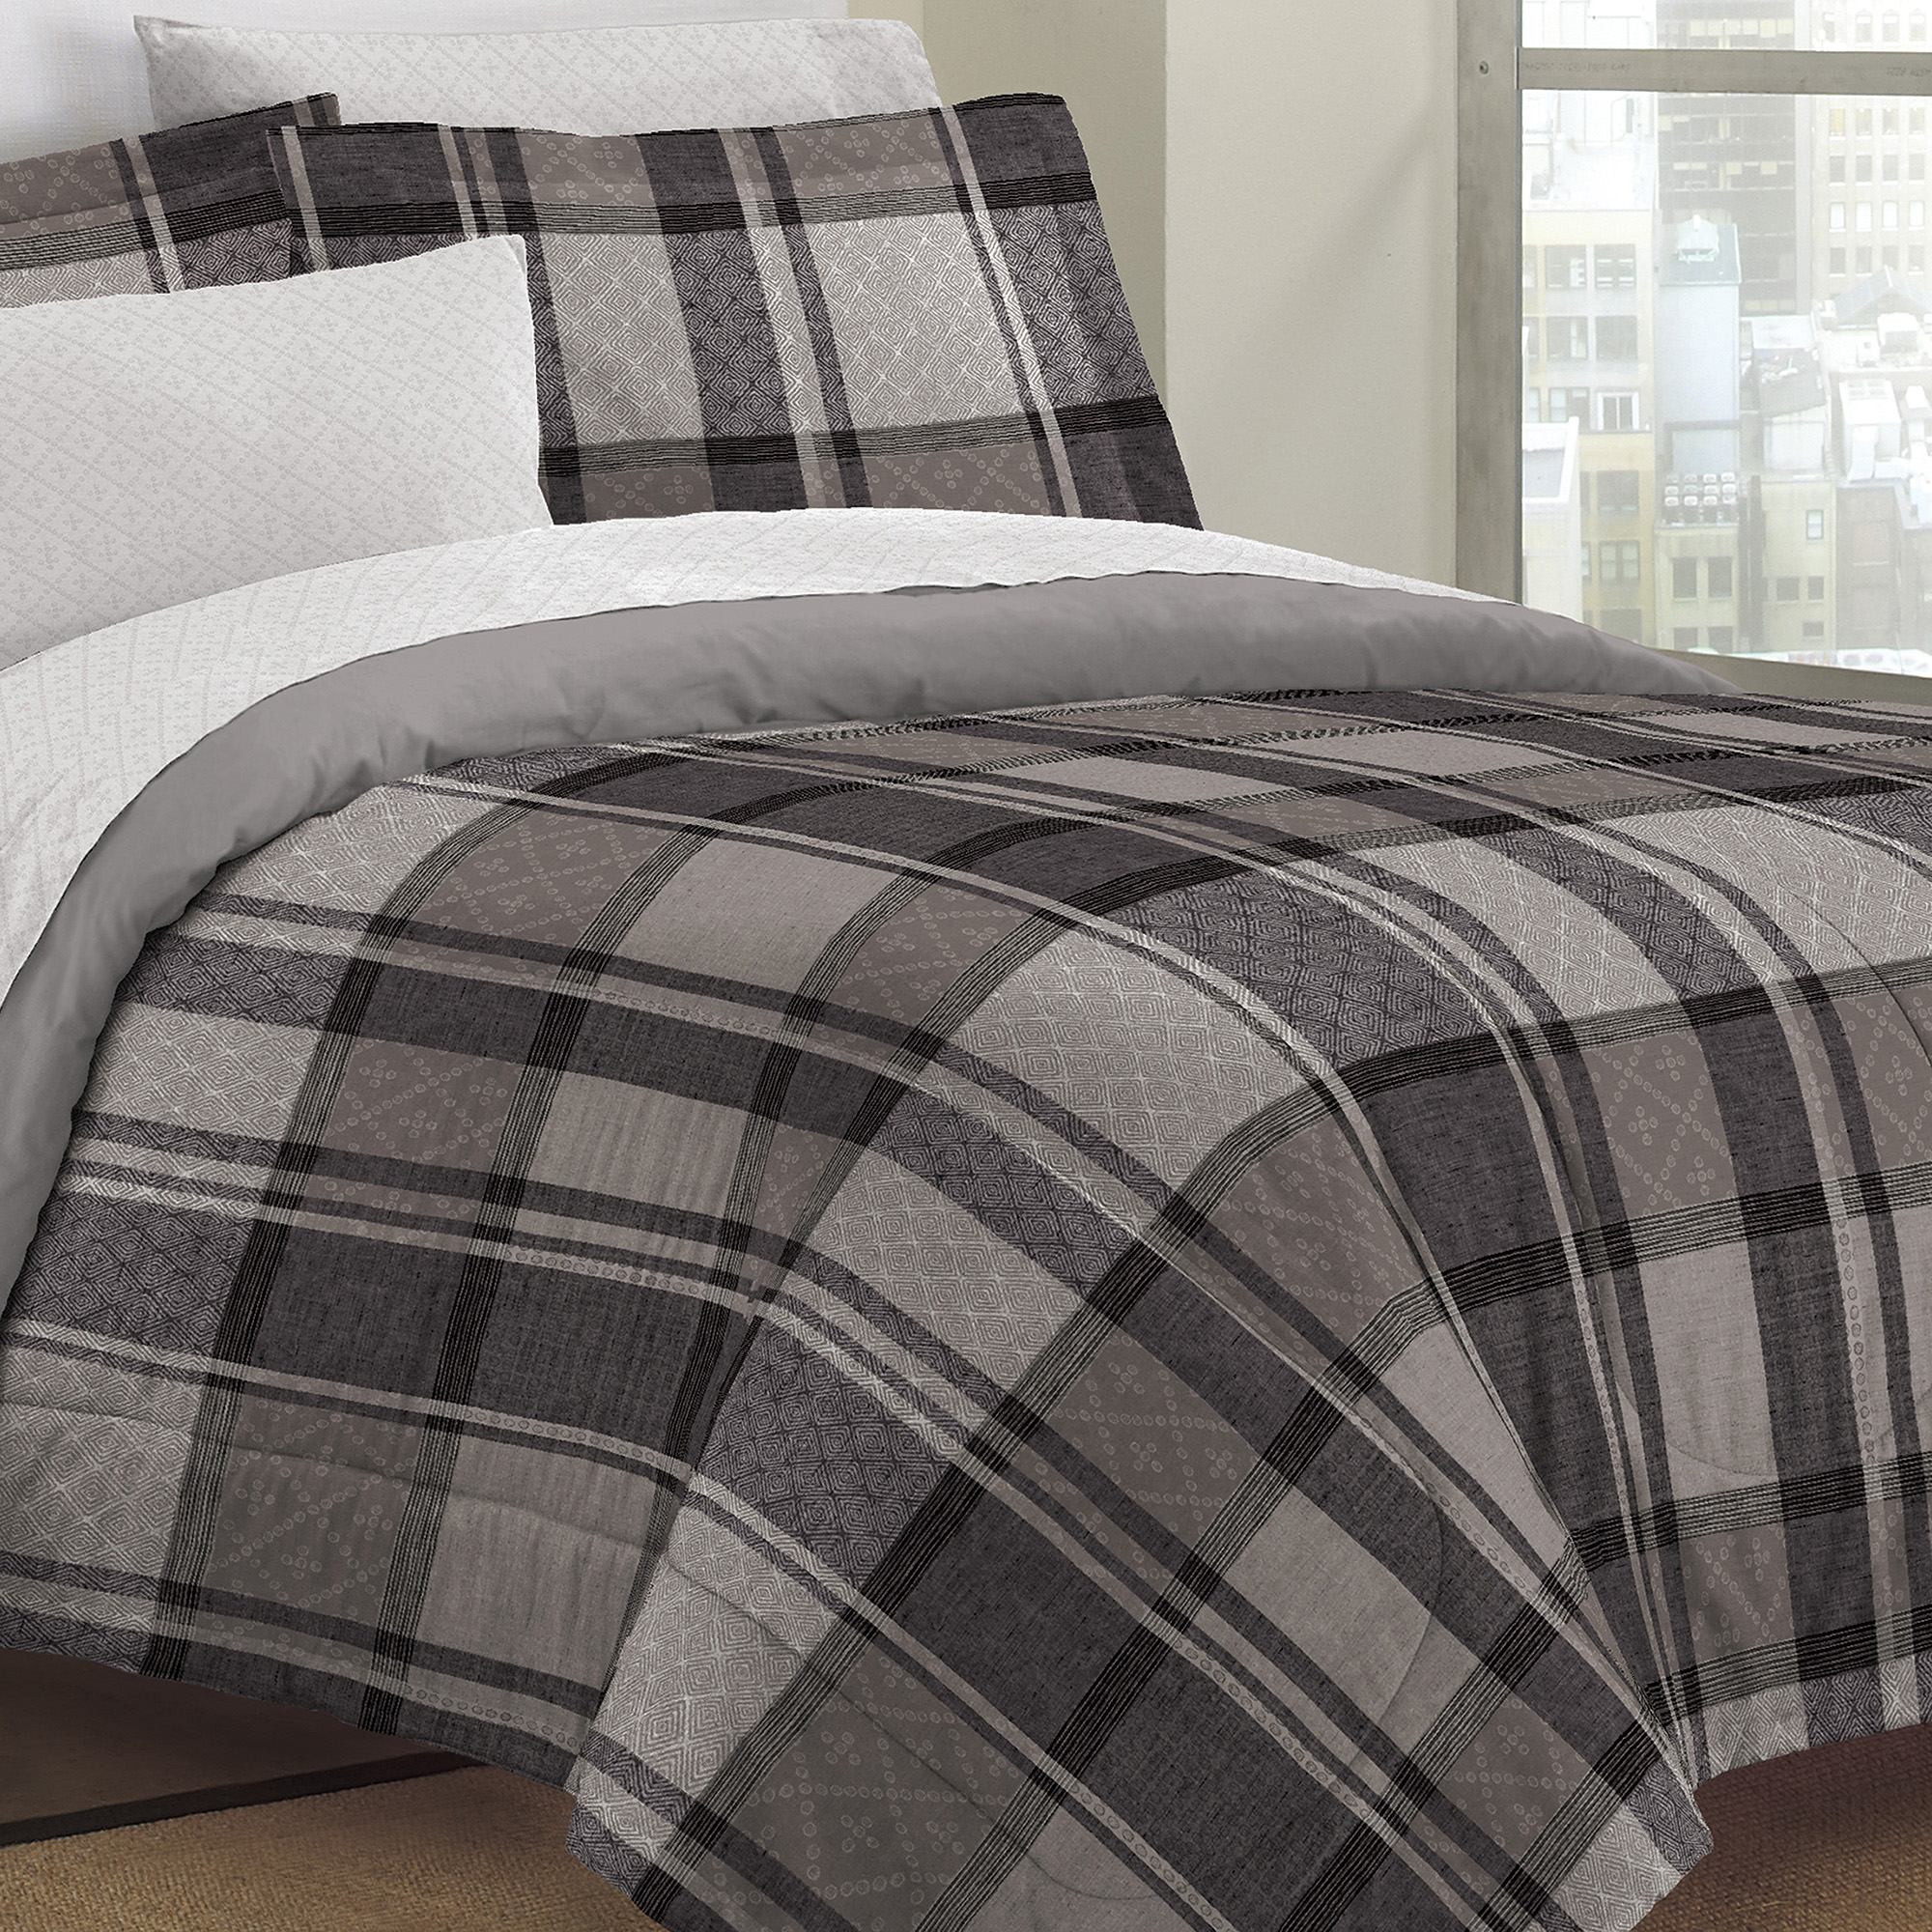 Loft Style Ultimate Plaid Bed In A Bag Bedding Set,Grey